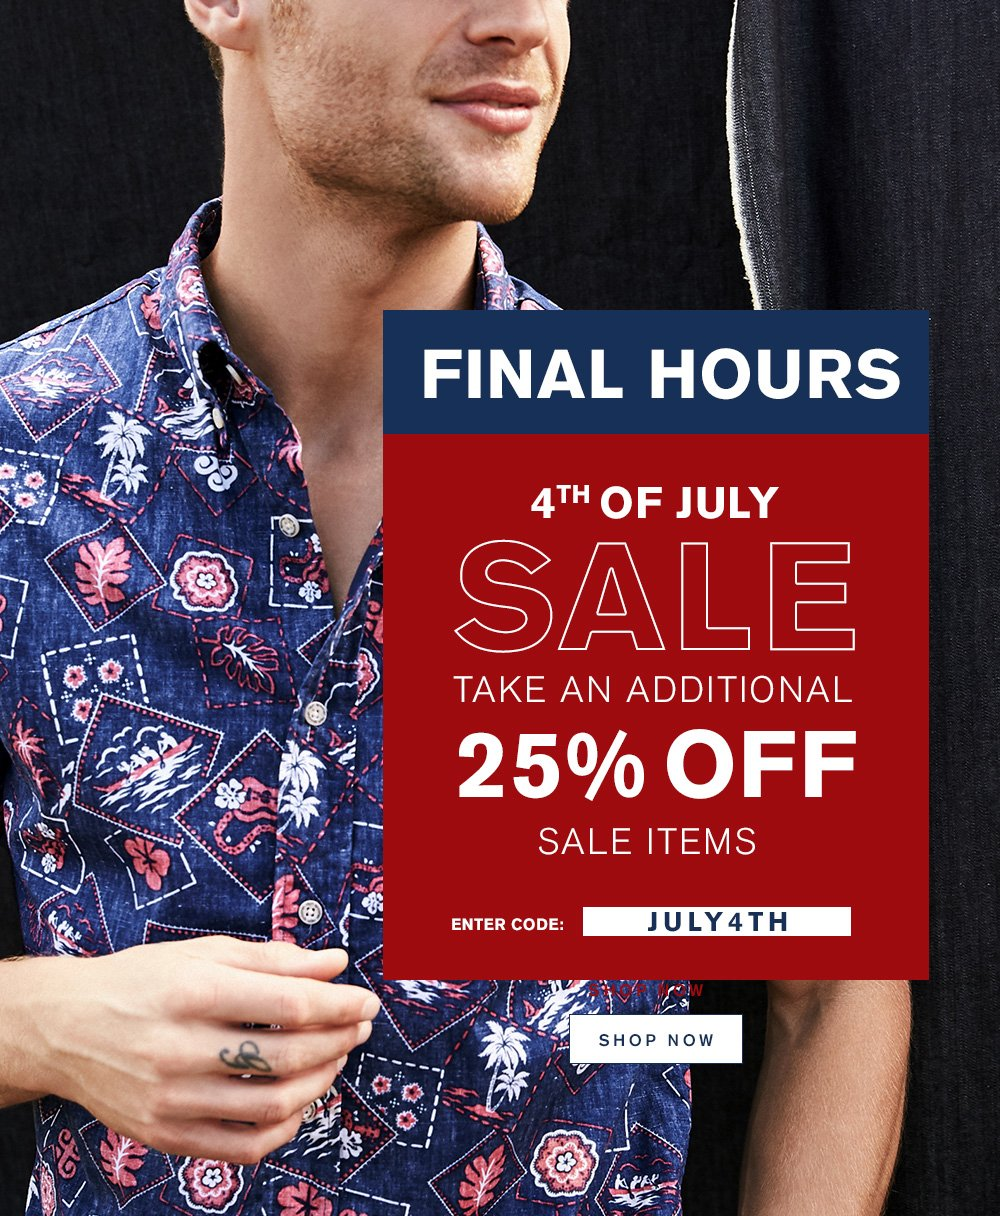 Final Hours 4th Of July Sale - 25% Off